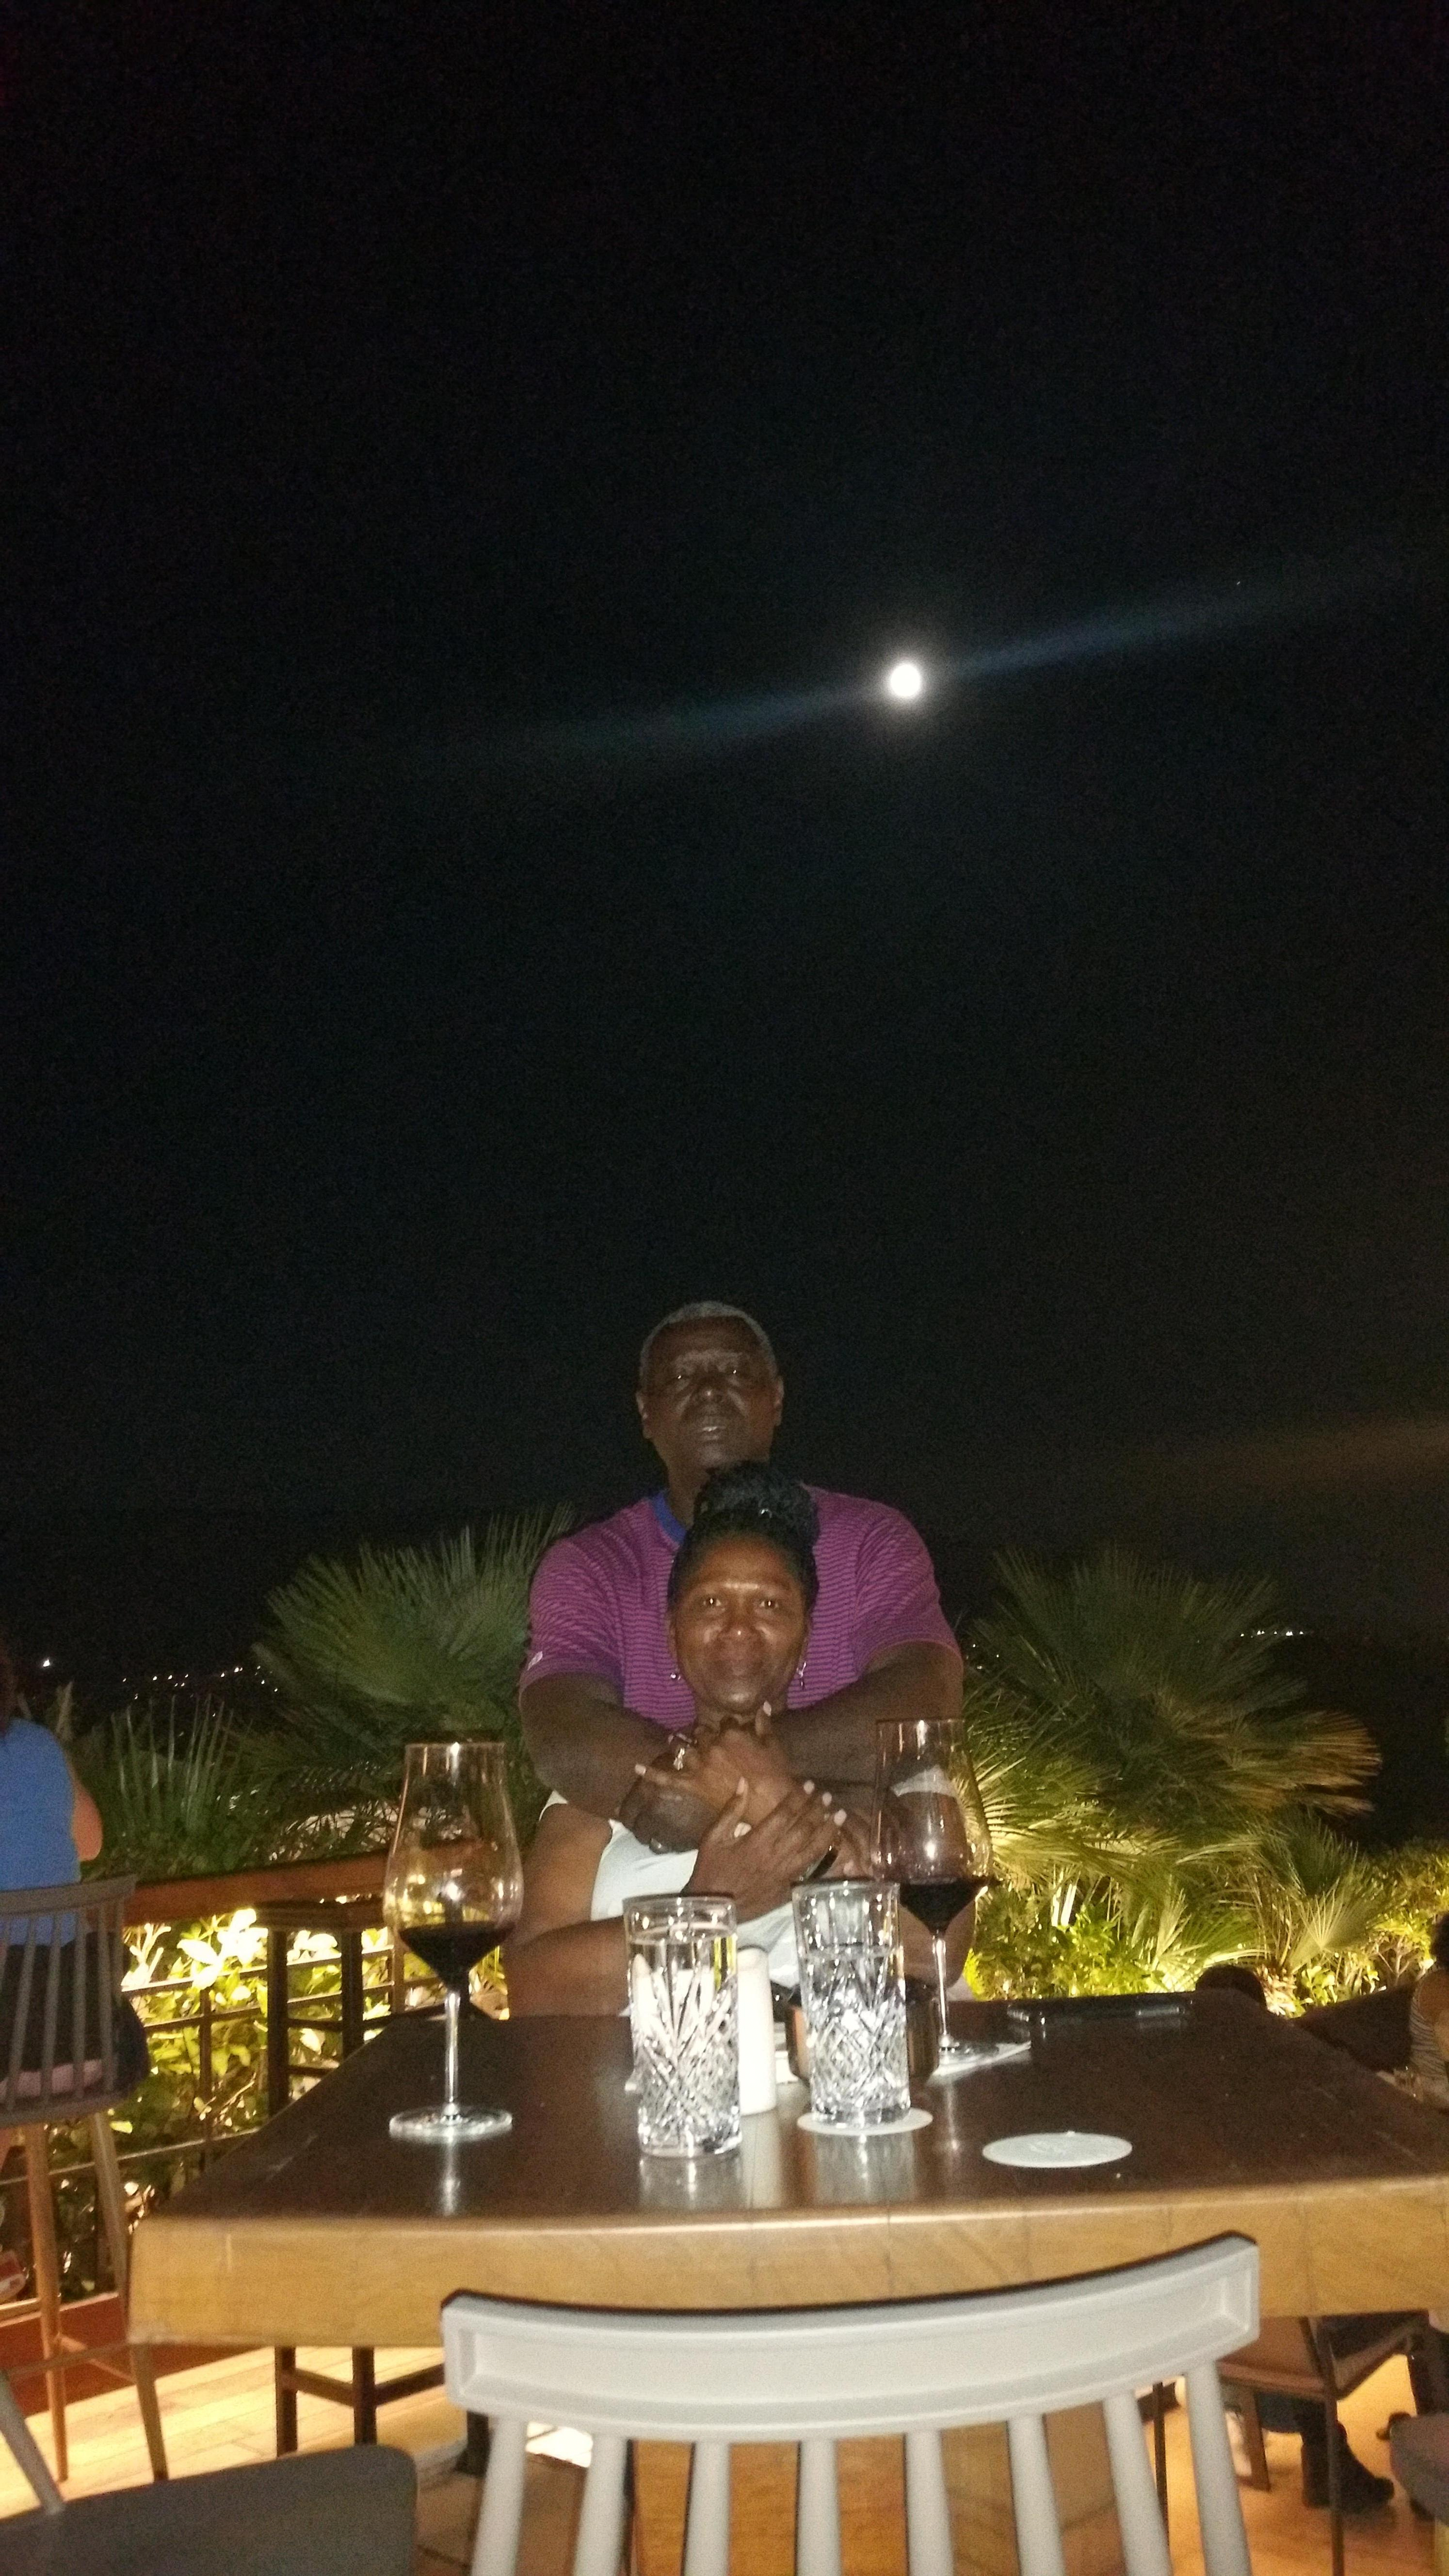 Having dinner under the stars on a moonlit nite at the restaurant on the rooftop. .it was very romantic